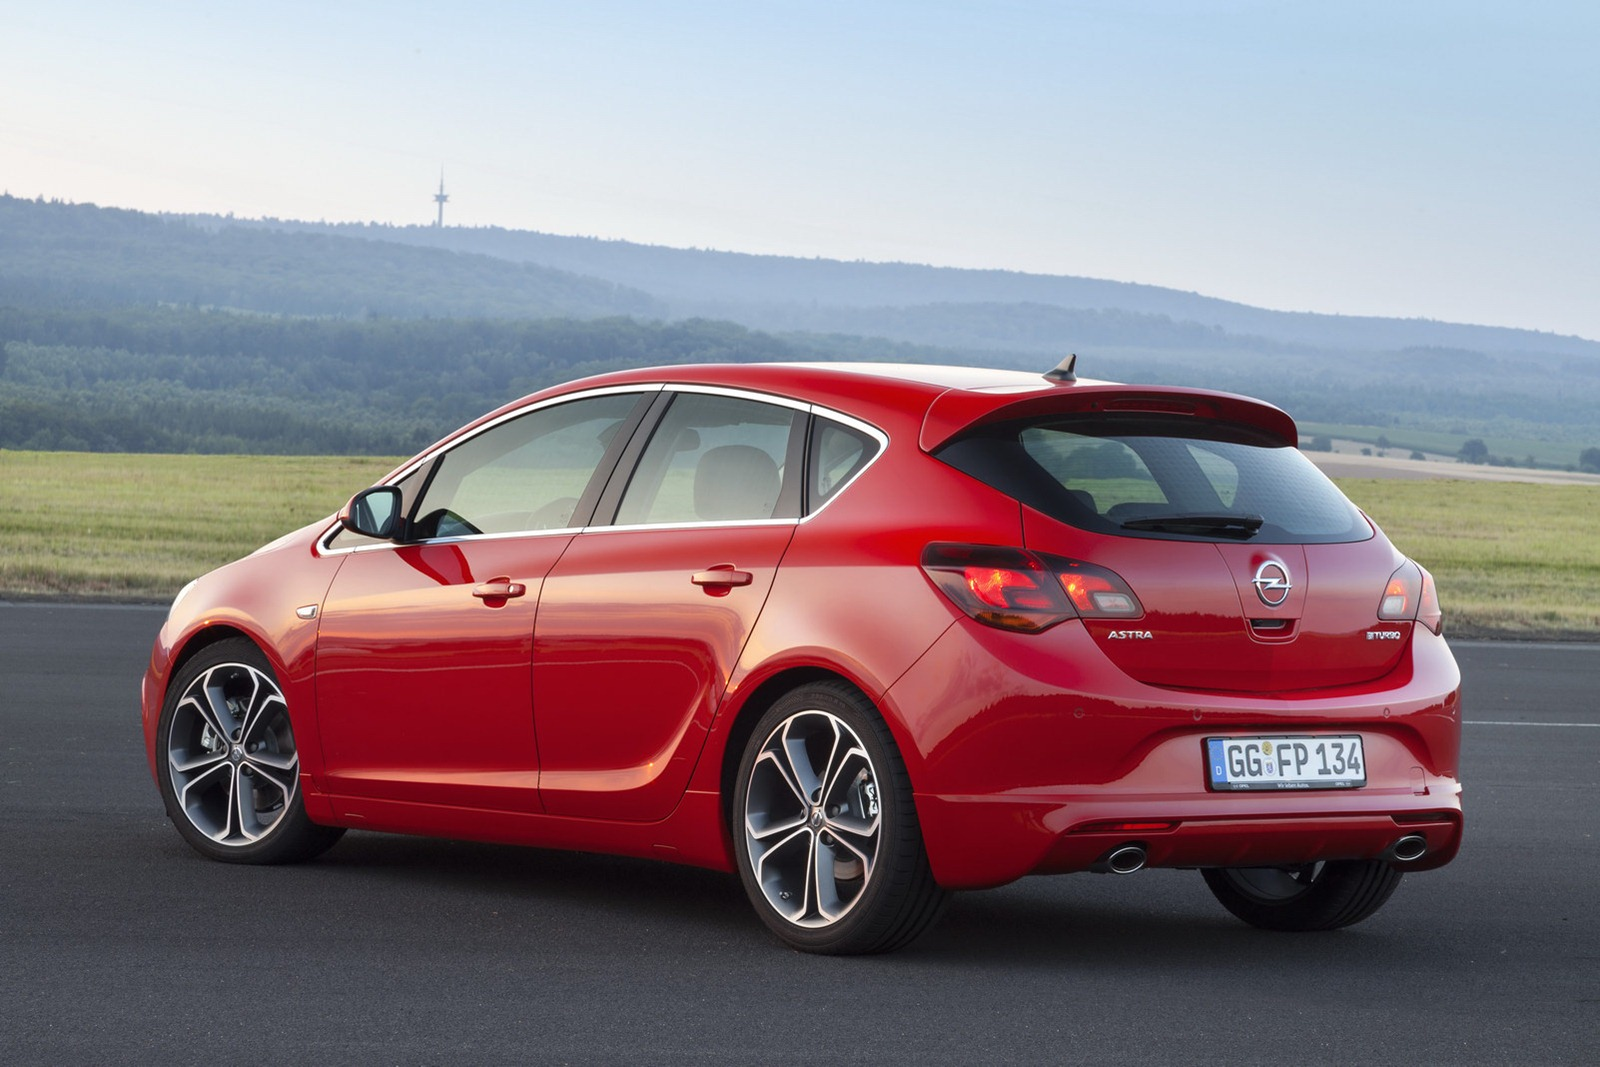 Le Meilleur World Premieres Of New Opel Astra Sedan And Facelift Astra Ce Mois Ci